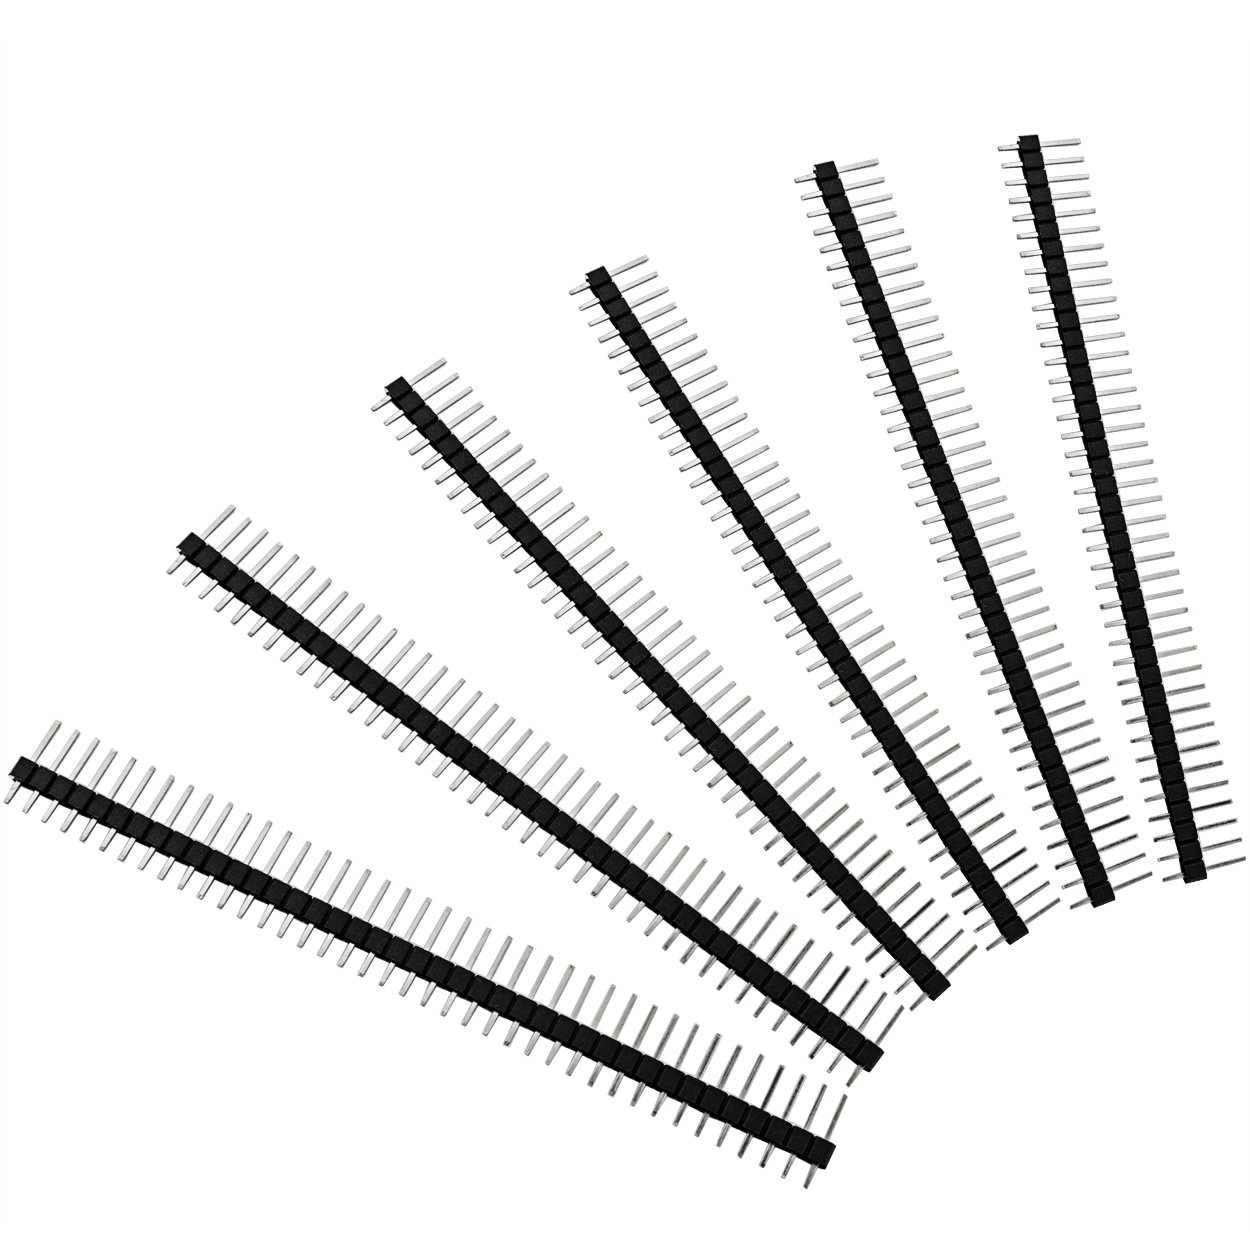 100pcs male header pins lystaii straight single row 40 pin 1 inch 38 Pin Male Connector 100pcs male header pins lystaii straight single row 40 pin 1 inch 2 54mm male pin header connector pcb board pin connector electronic ponent raw